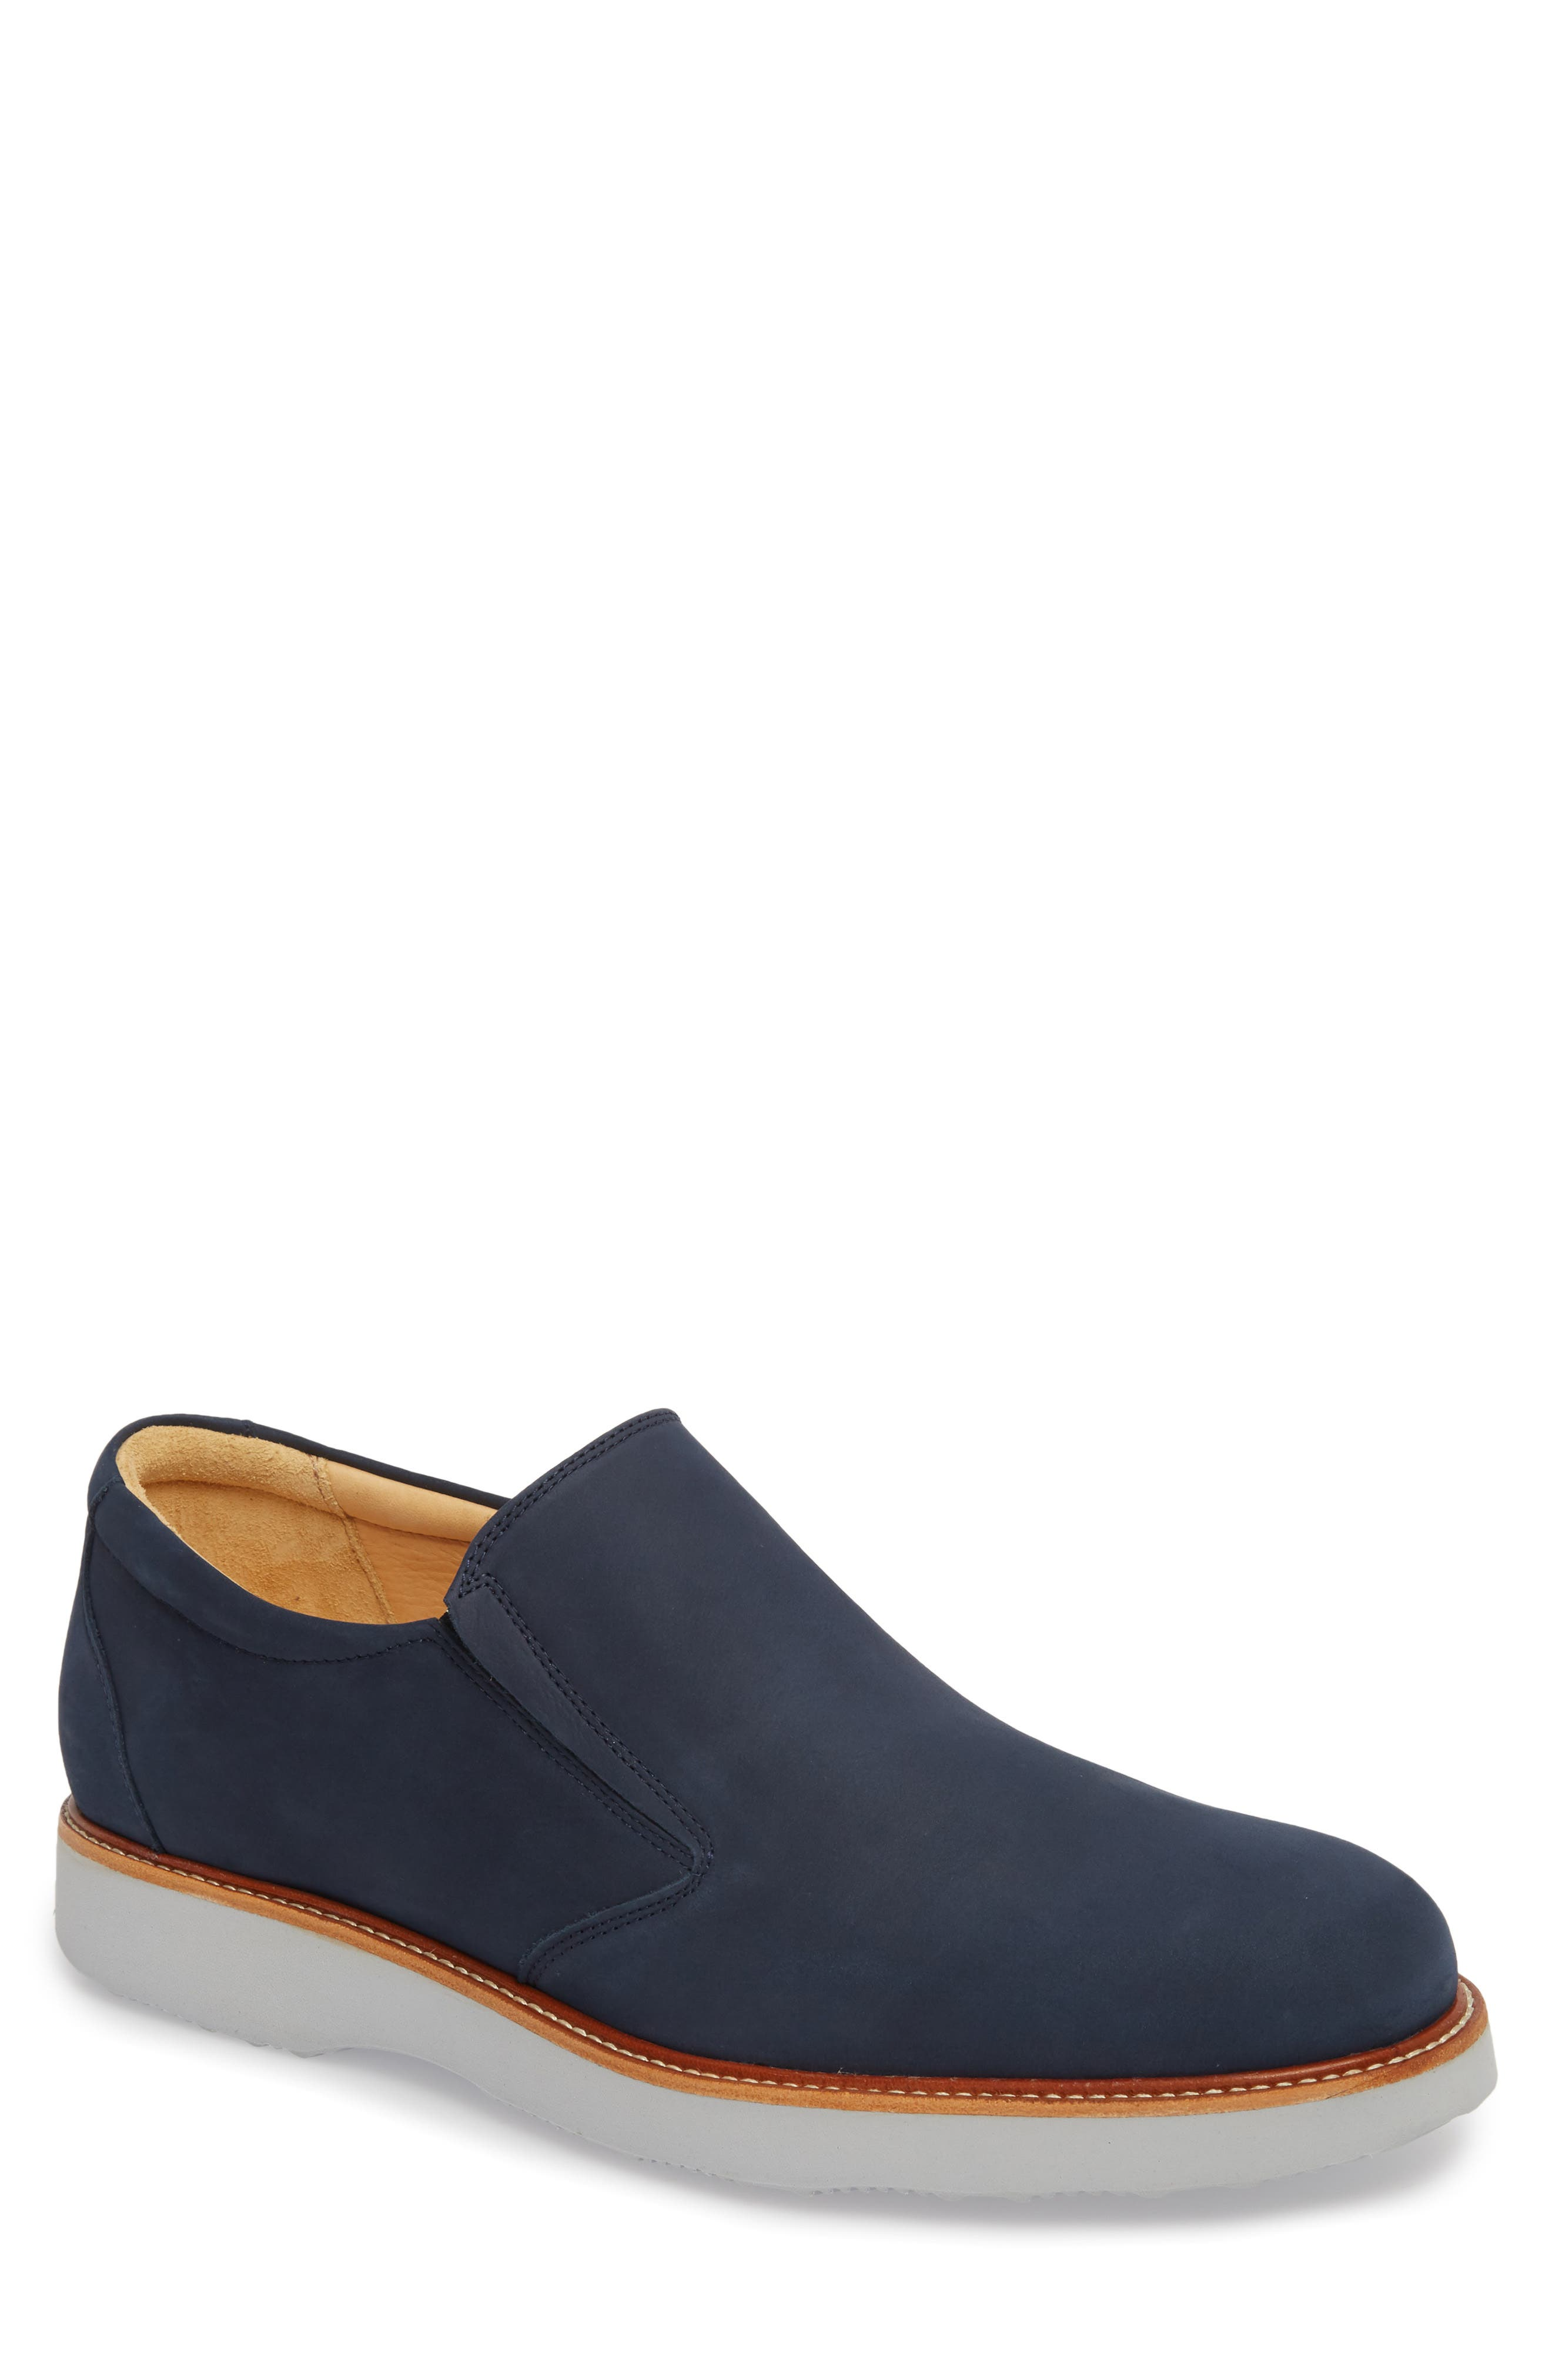 'Frequent Traveler' Slip-On,                         Main,                         color, Navy Nubuck Leather